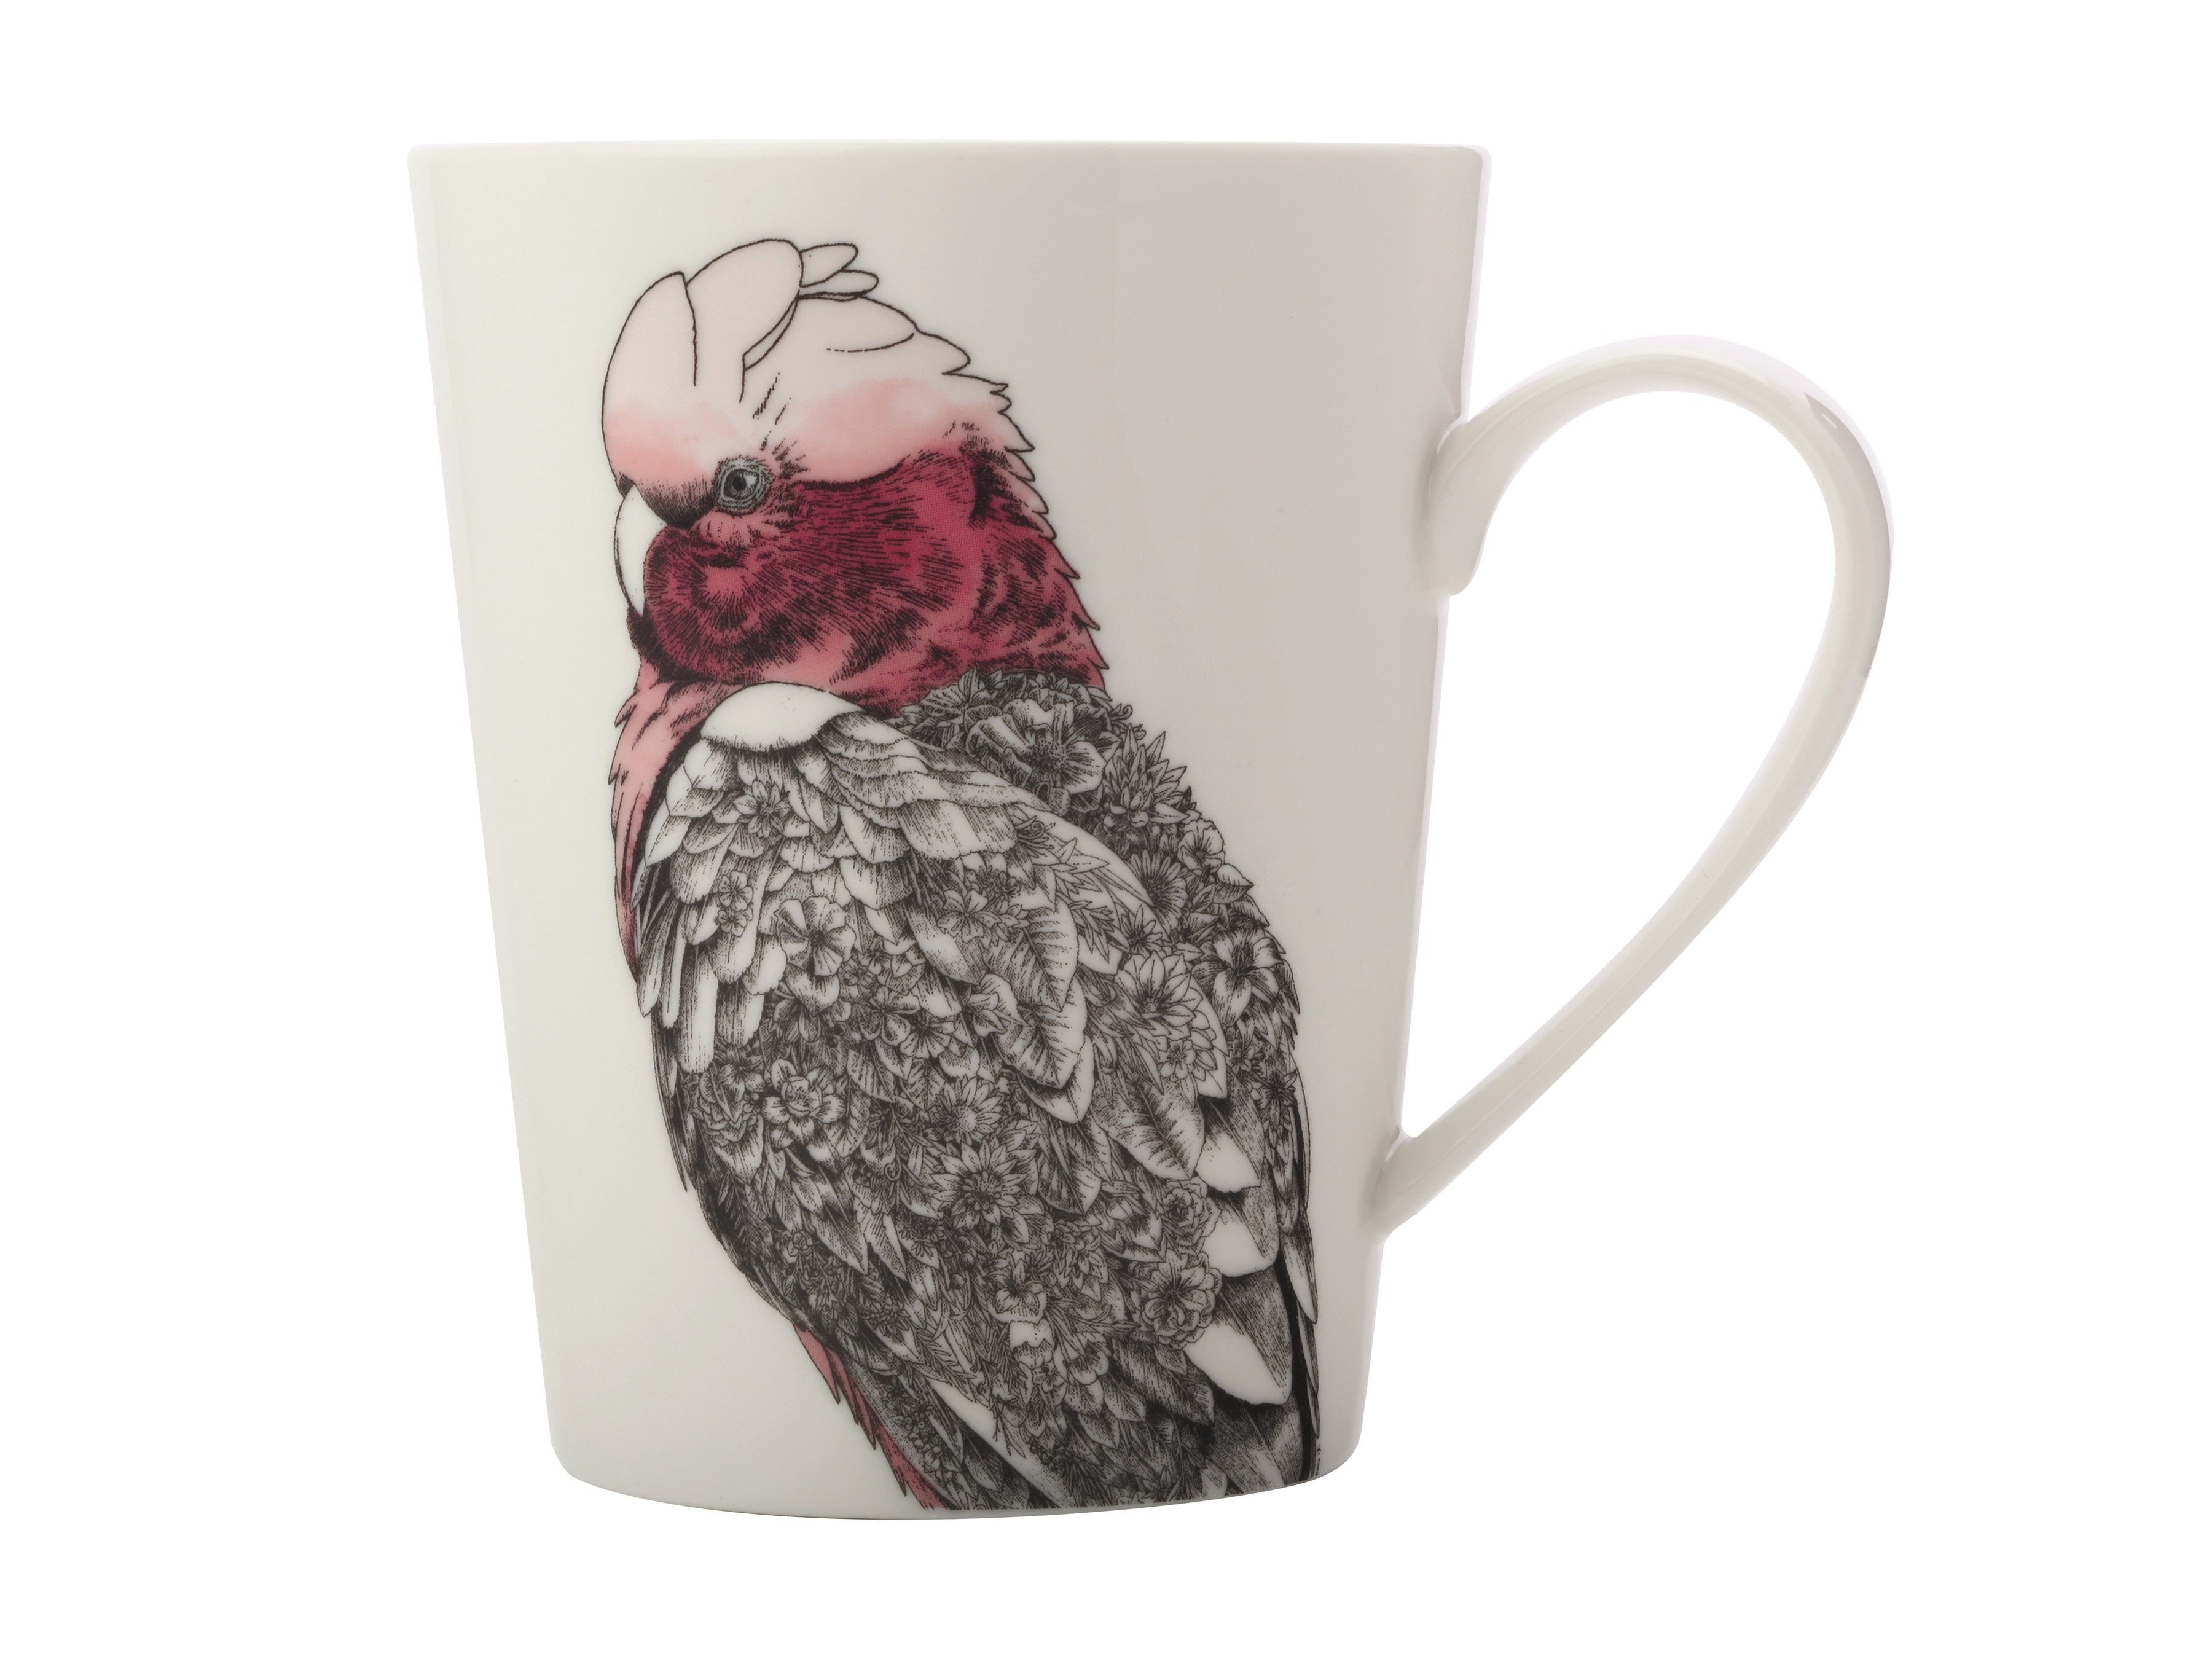 MW Marini Ferlazzo Birds Galah Mug, Bottle and Tea Towel Set